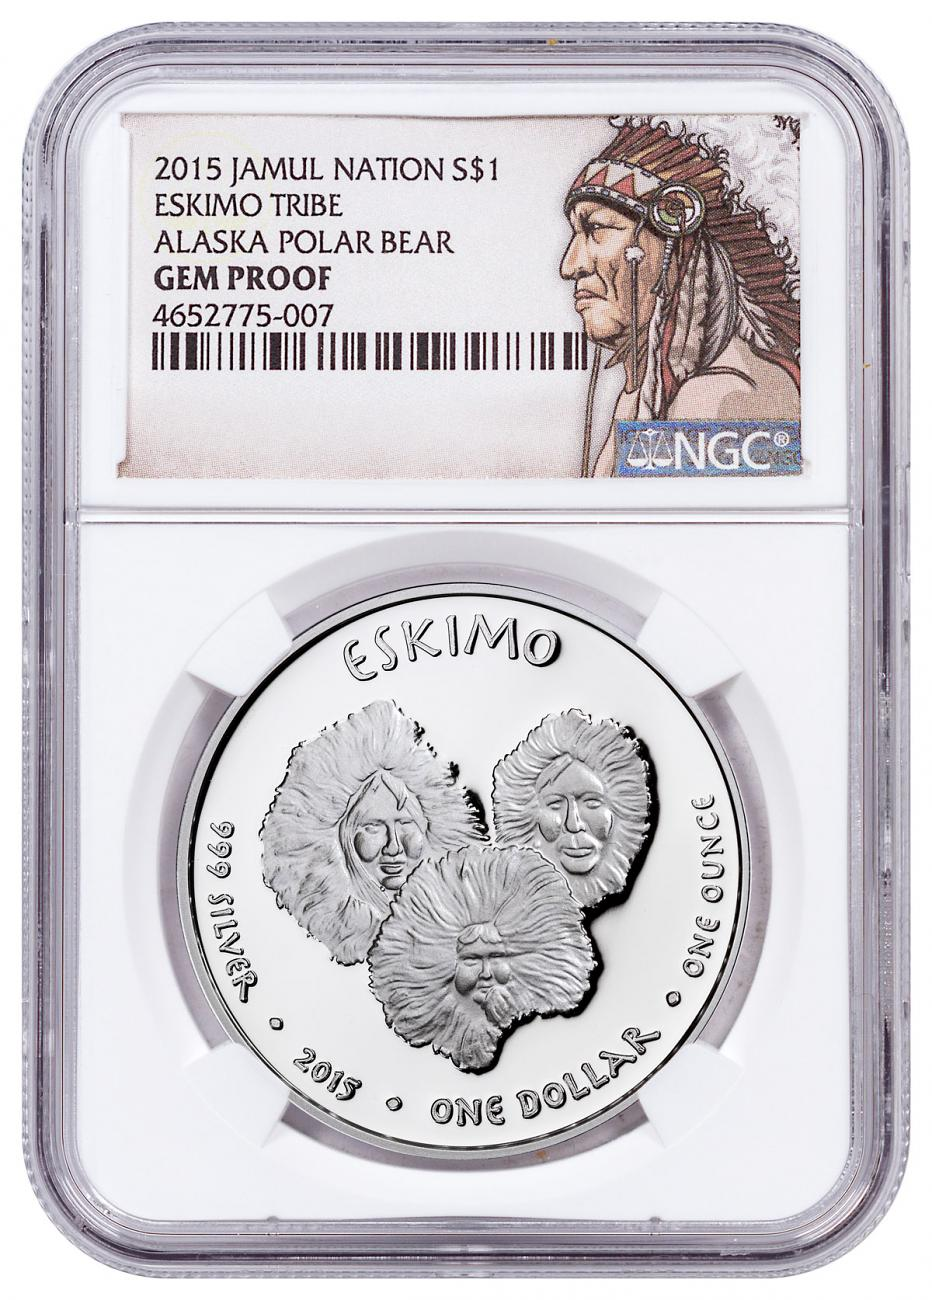 2015 Native American Silver Dollar - Alaskan Eskimo - Polar Bear 1 oz Silver Proof Coin NGC GEM Proof Native American Label